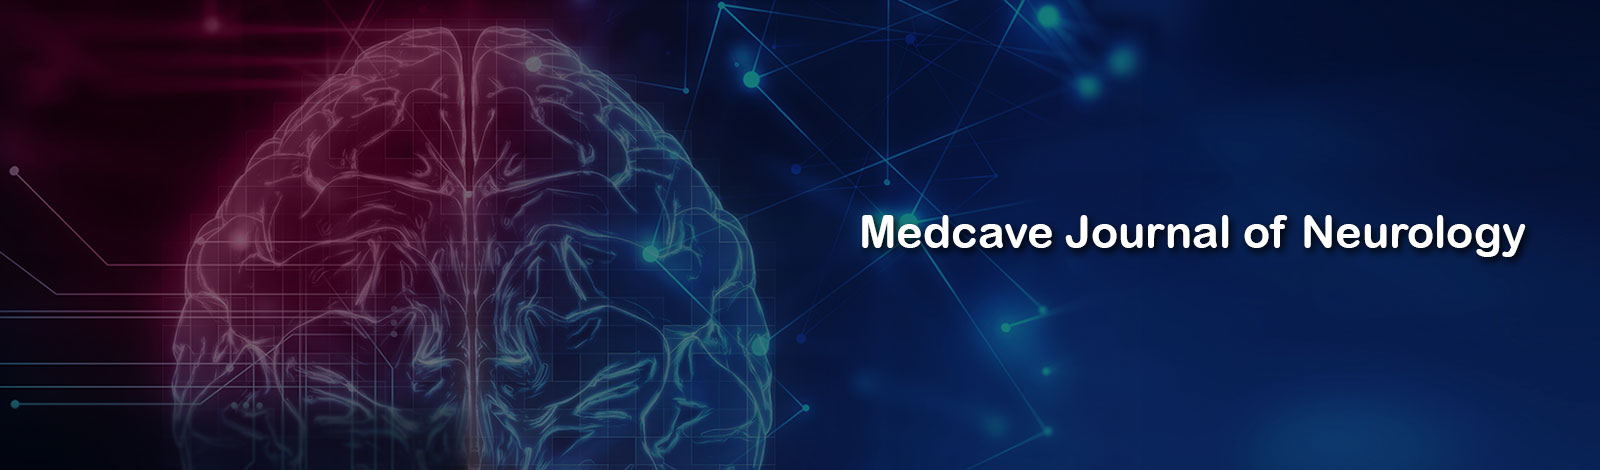 Medcave Journal of Neurosciences